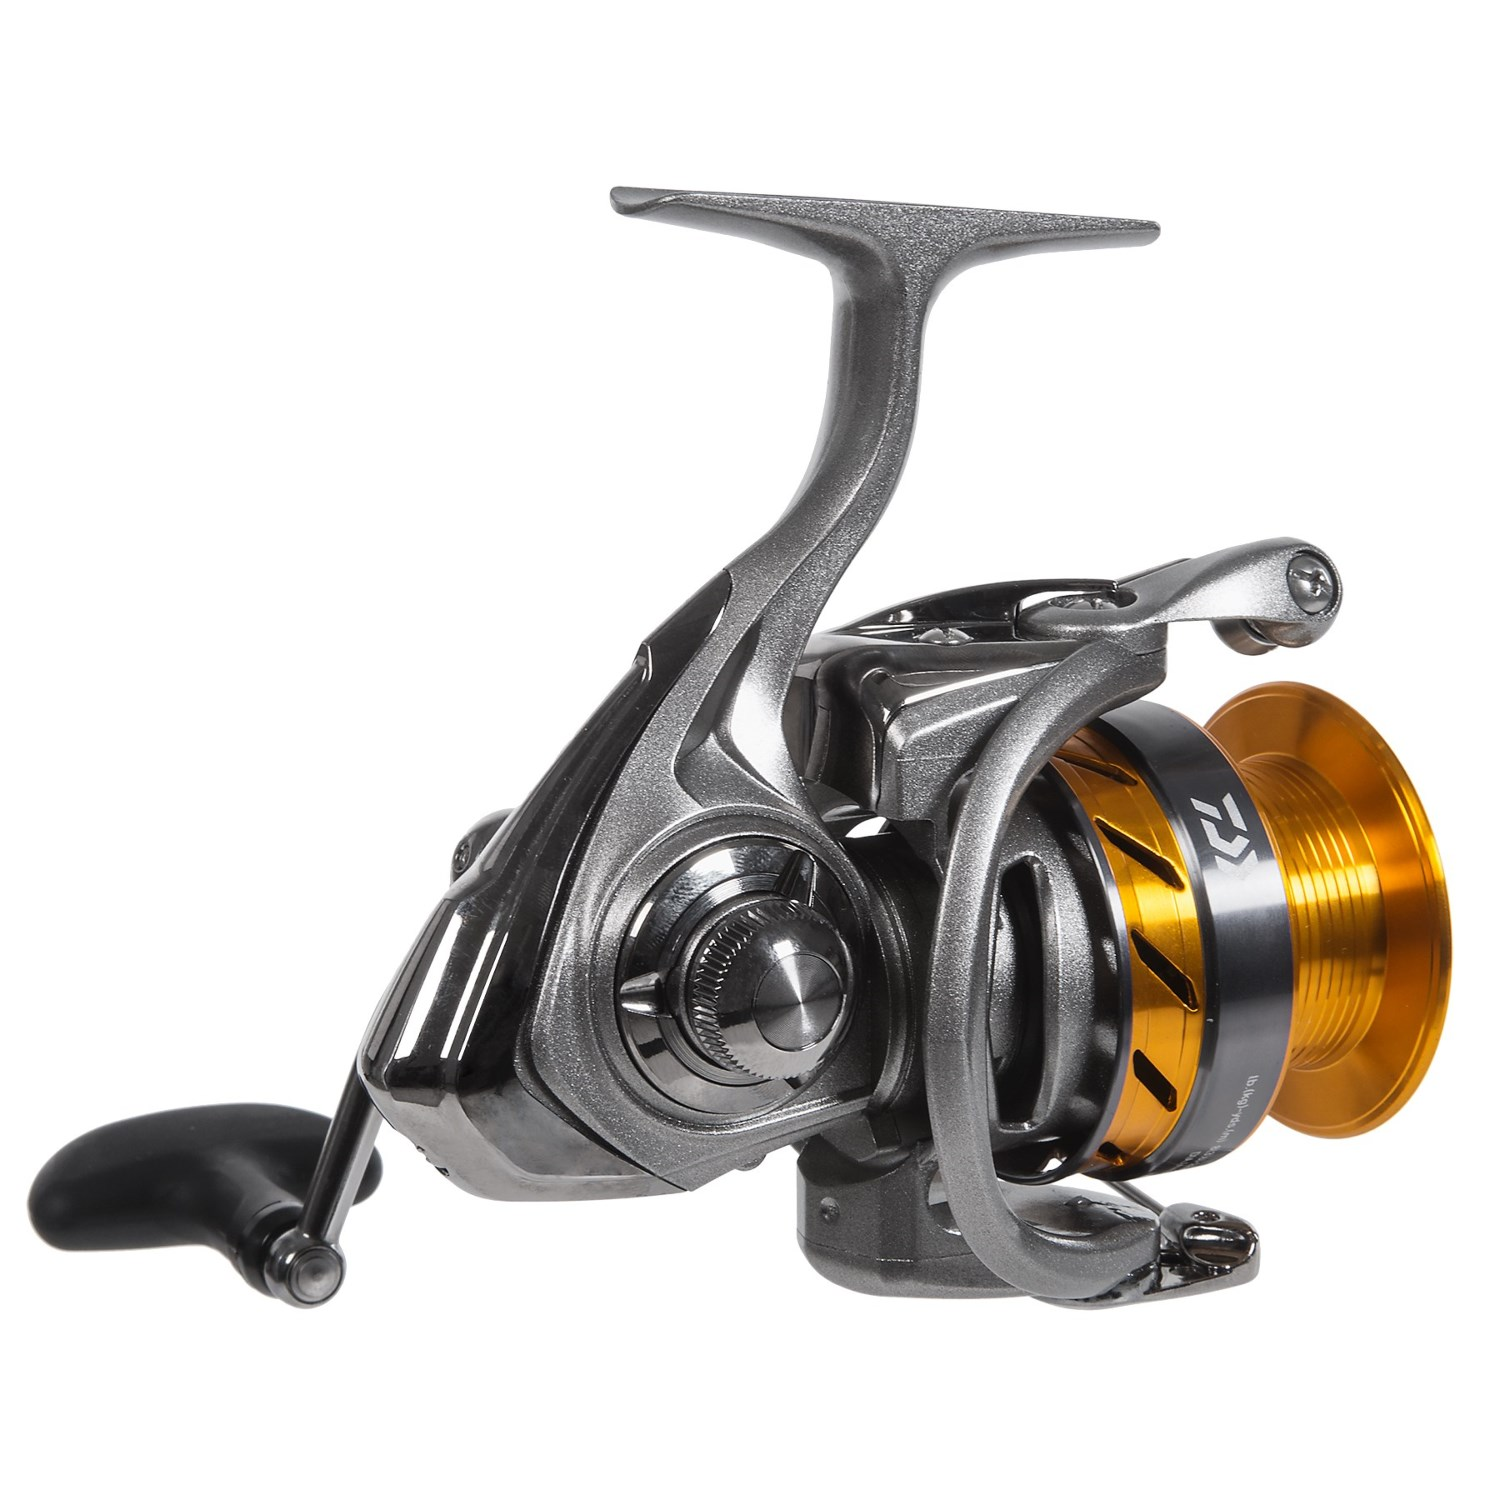 Daiwa revros 3000 spinning reel save 41 for Daiwa fishing reels